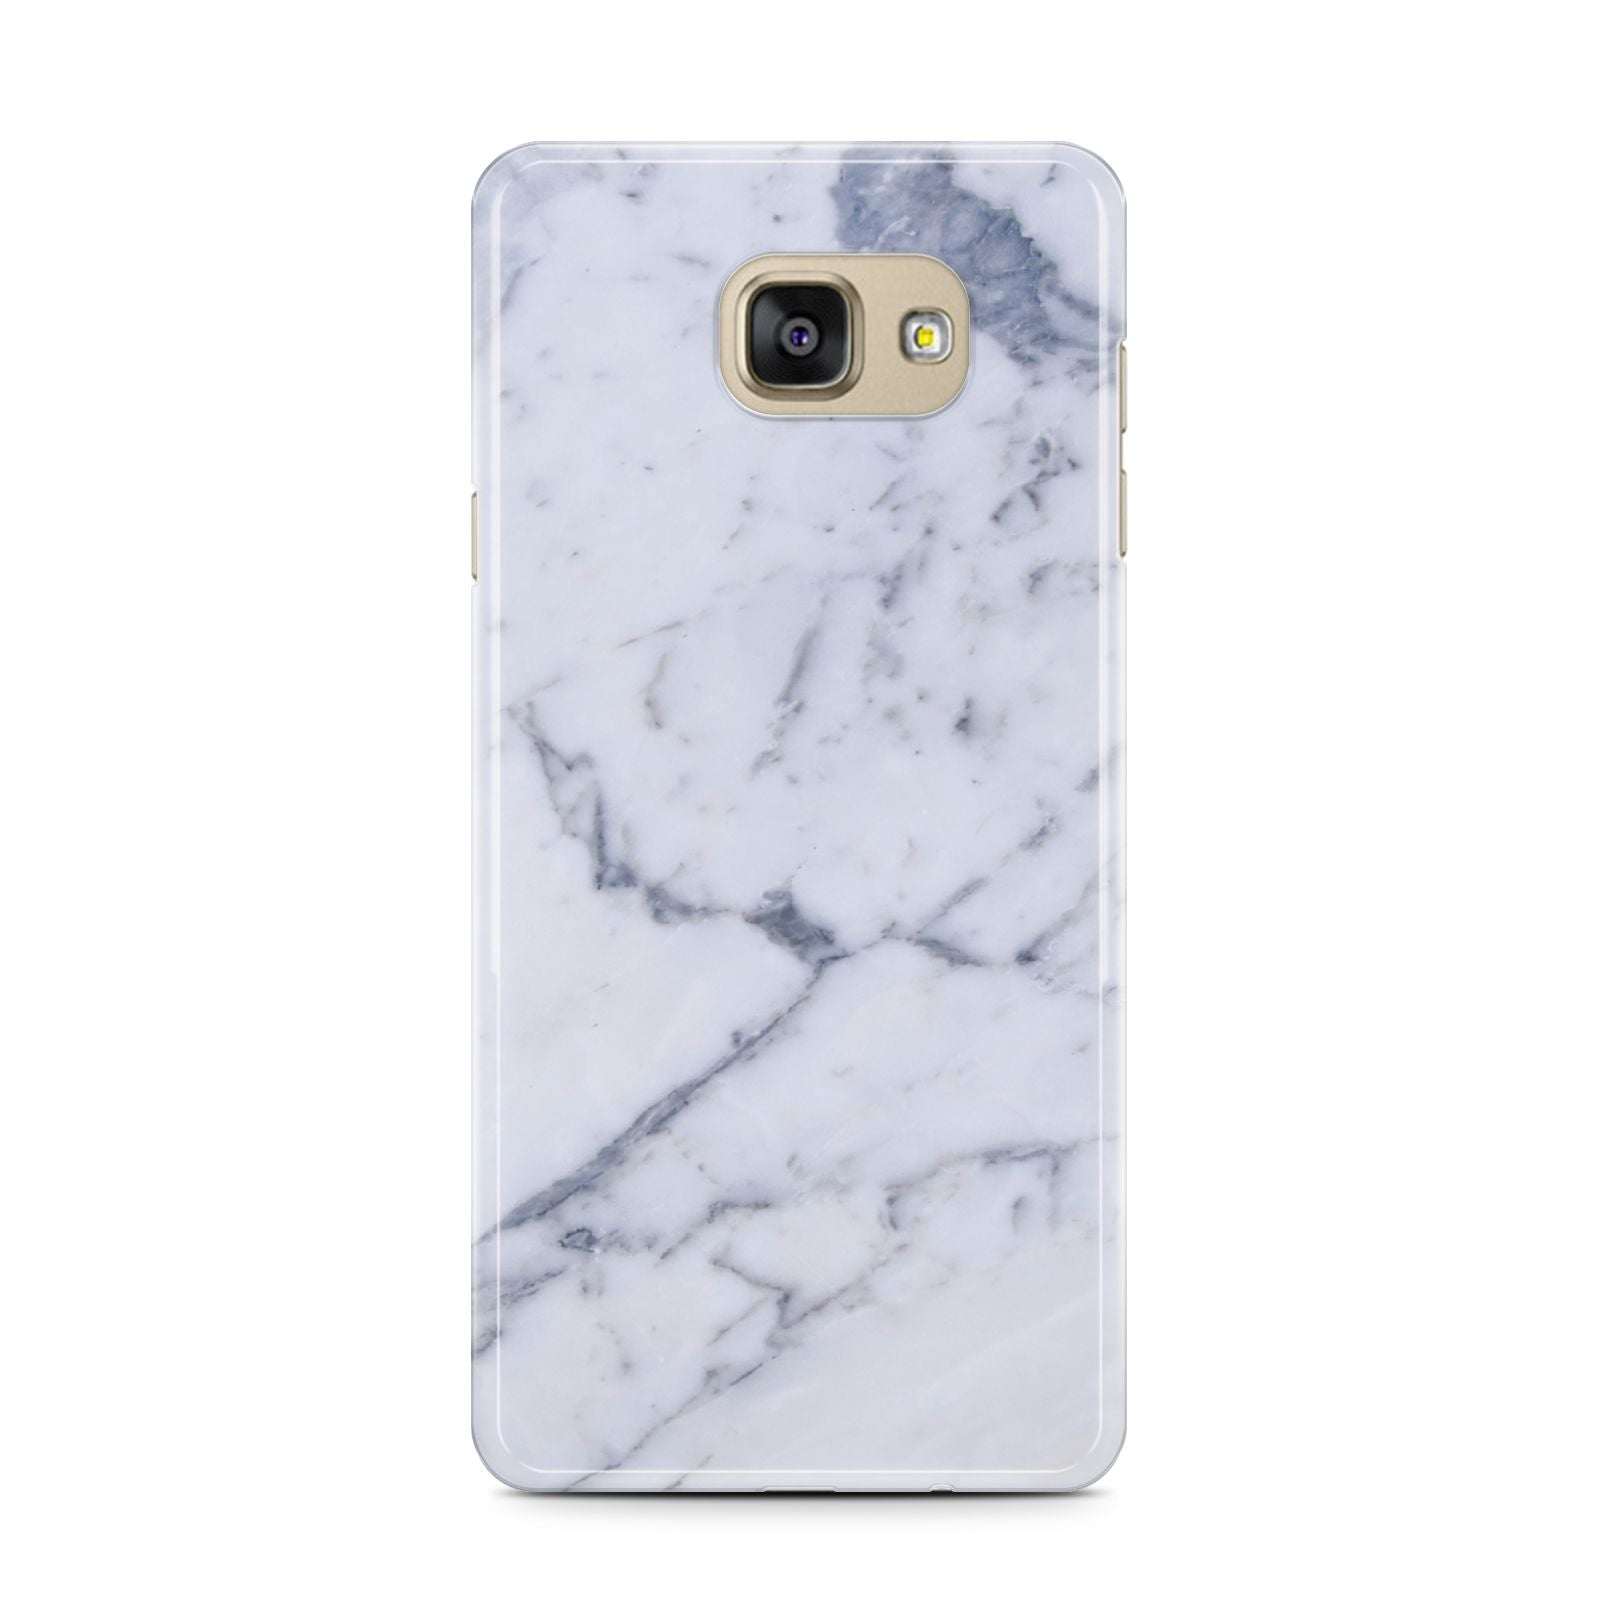 Faux Marble Grey White Samsung Galaxy A7 2016 Case on gold phone